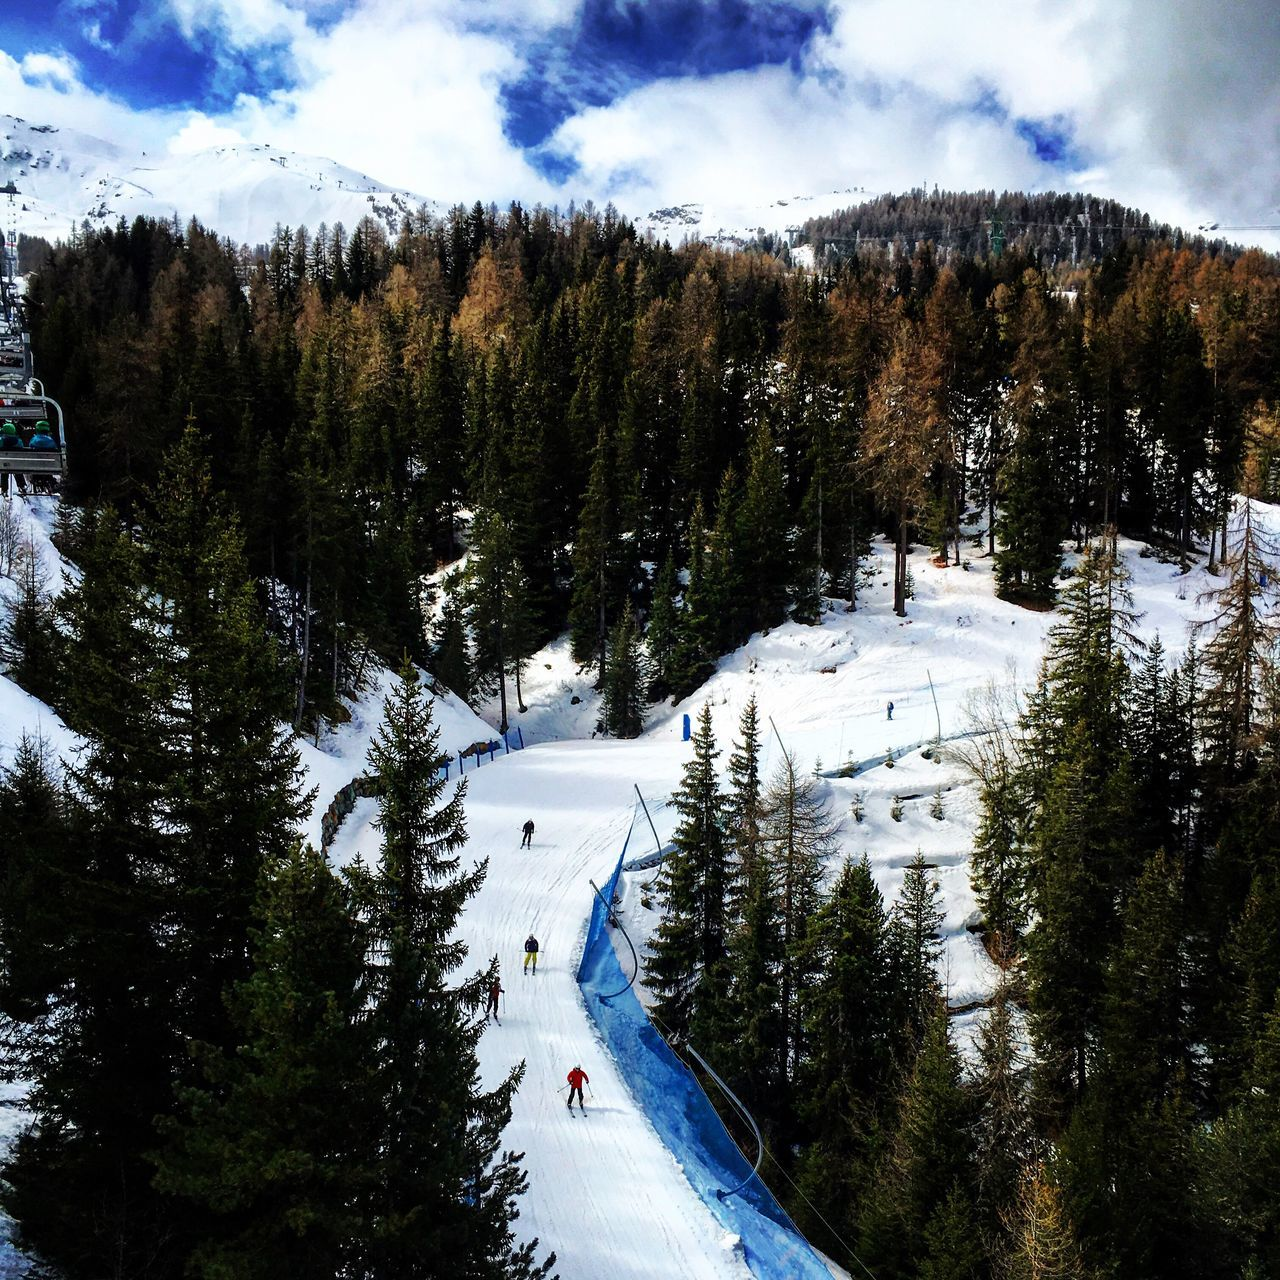 Pila Skiing Resort Italy Aosta Winter Snow Cold Temperature Weather Tree Beauty In Nature Nature Scenics Tranquility Tranquil Scene Non-urban Scene Sky Mountain Ski Track Outdoors Day Landscape No People Ski Lift Adventure